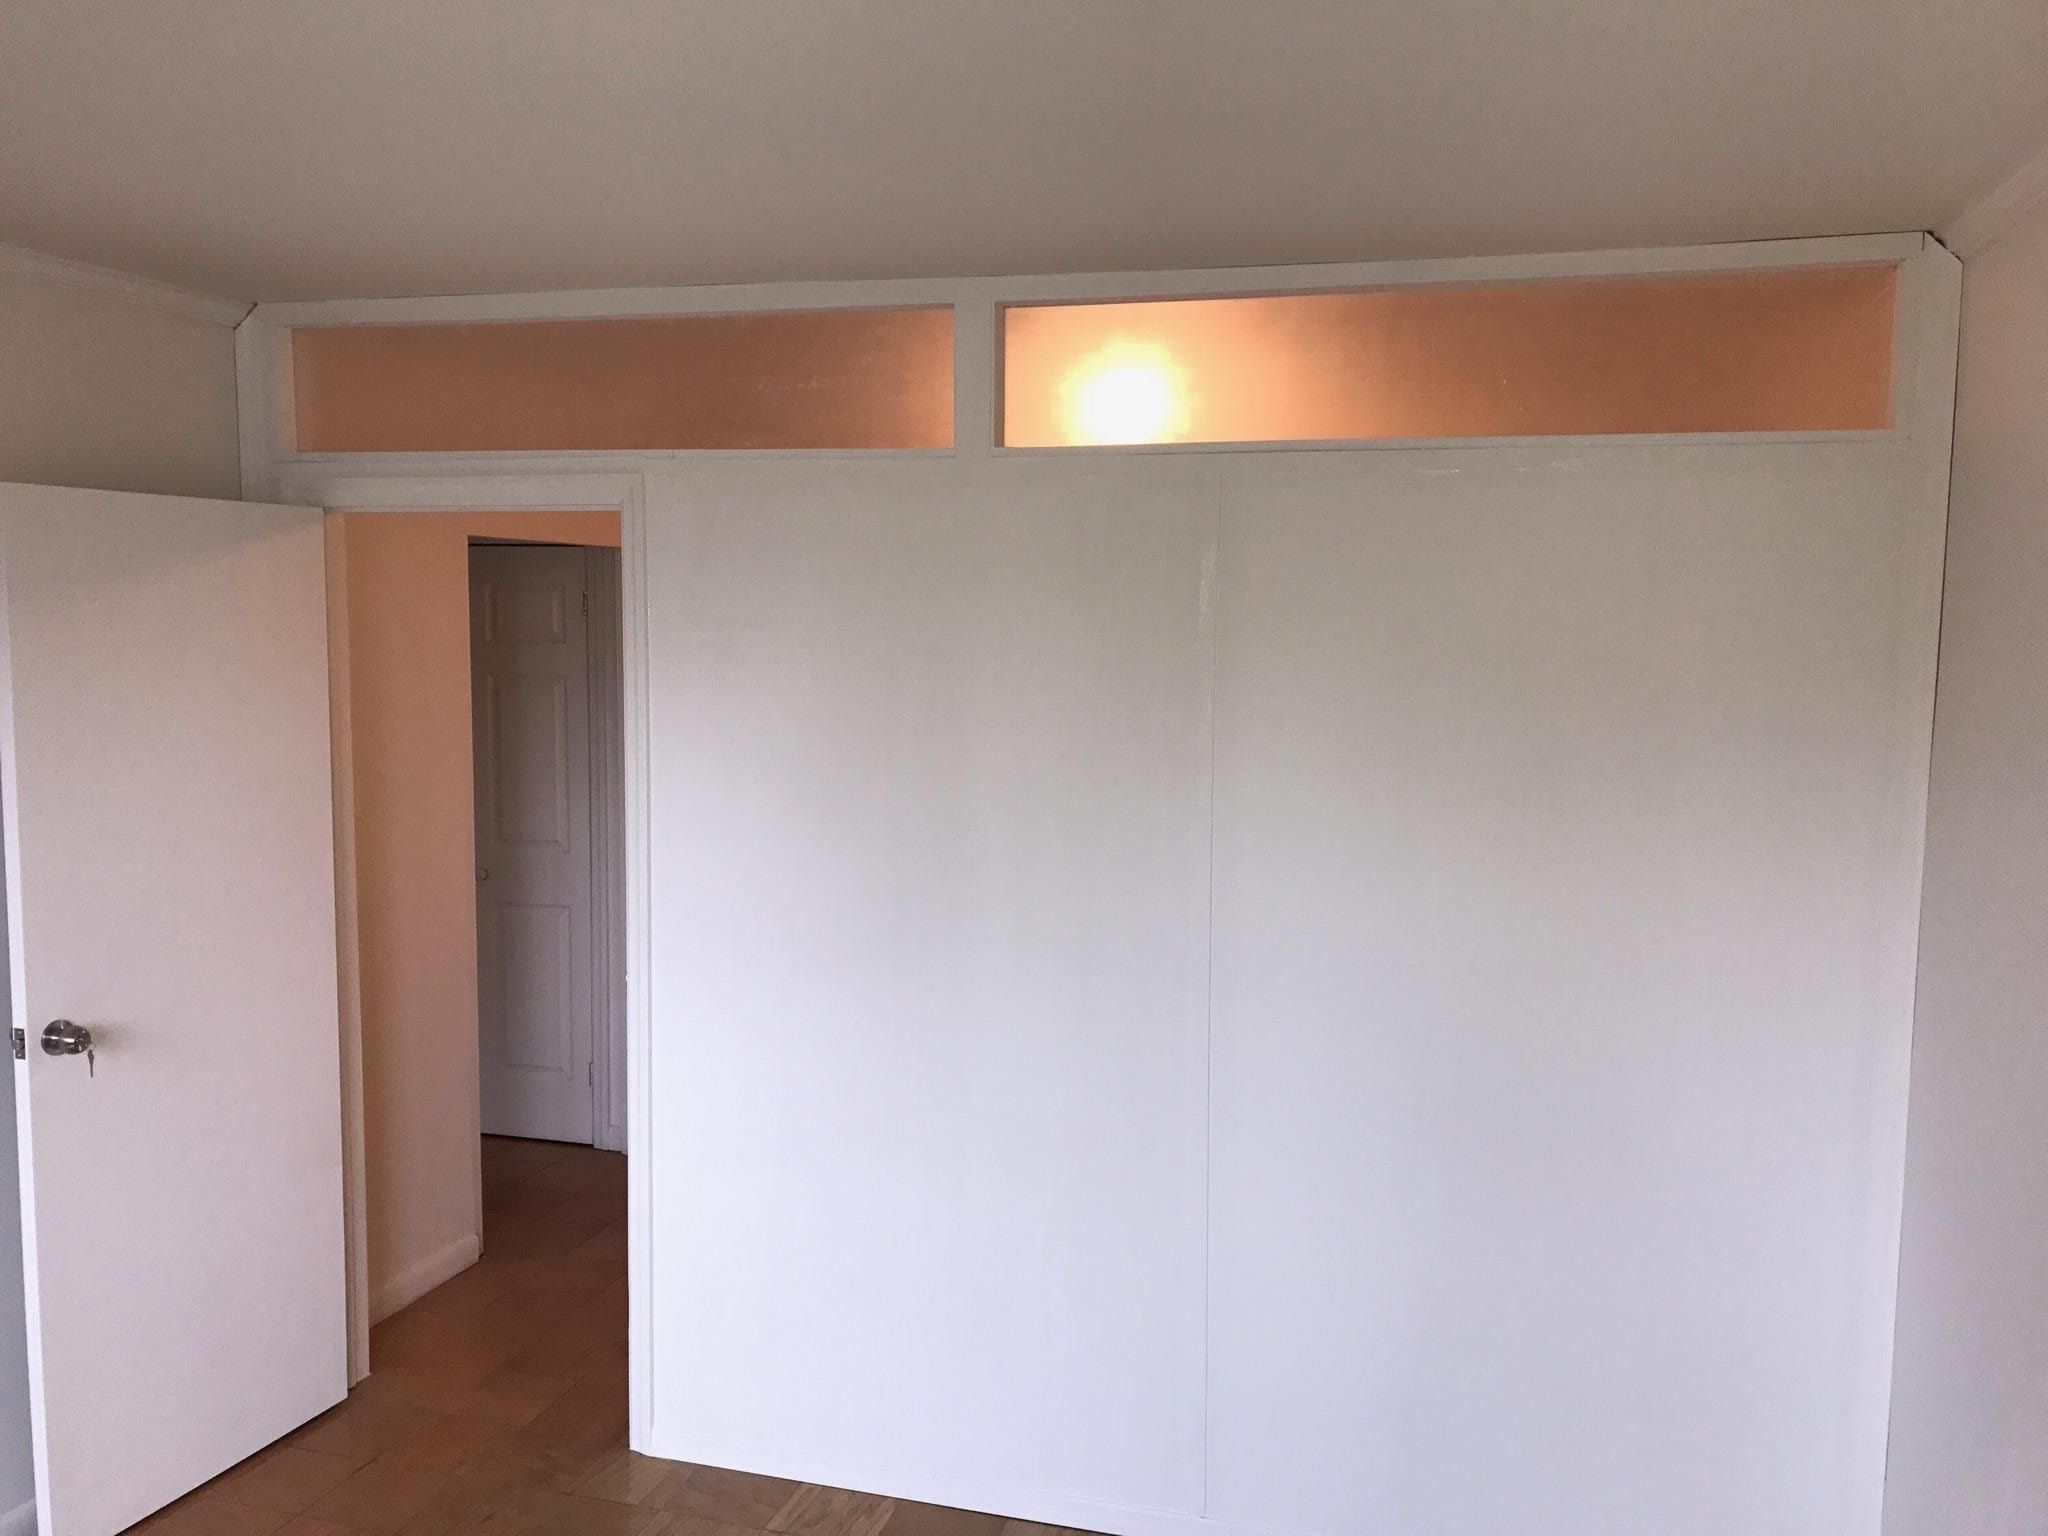 Recent Installation Temporary Partition With Plexiglass Transom Call Us For All Your Custom Room Partitio Fake Walls Room Divider Walls Room Divider Bookcase